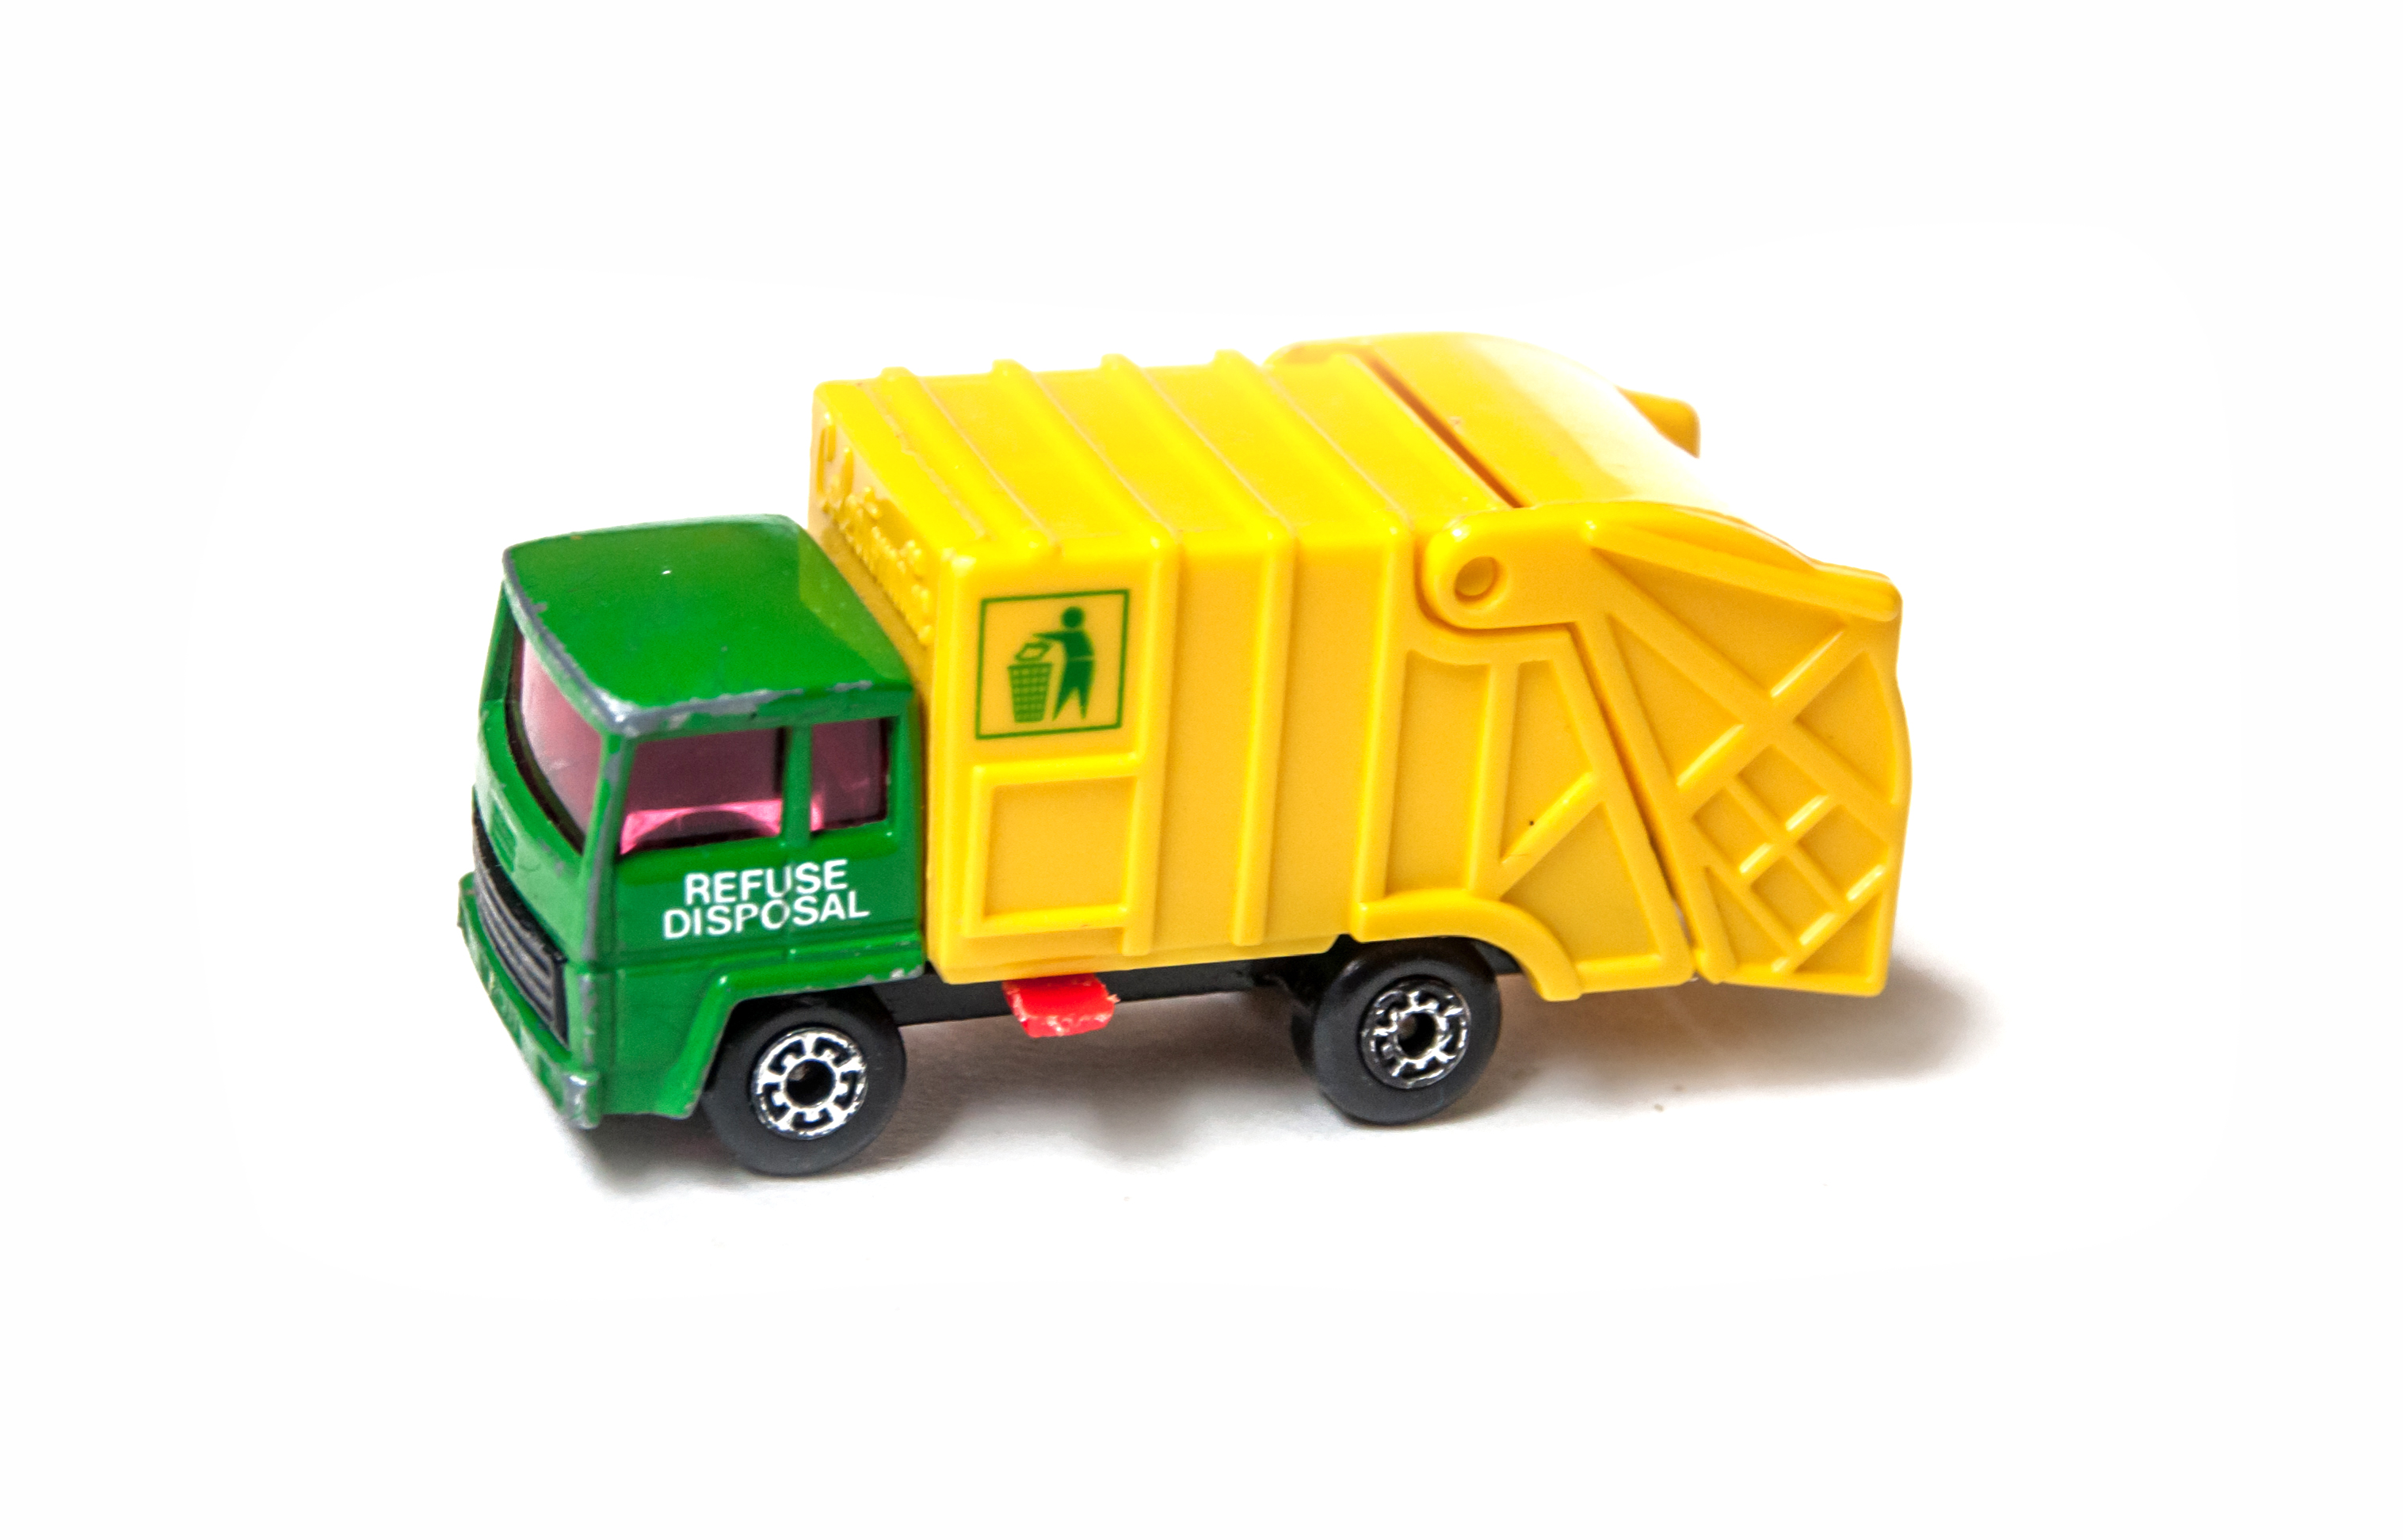 Garbage truck toy, Toy, Recycle, Recycling, Refuse, HQ Photo